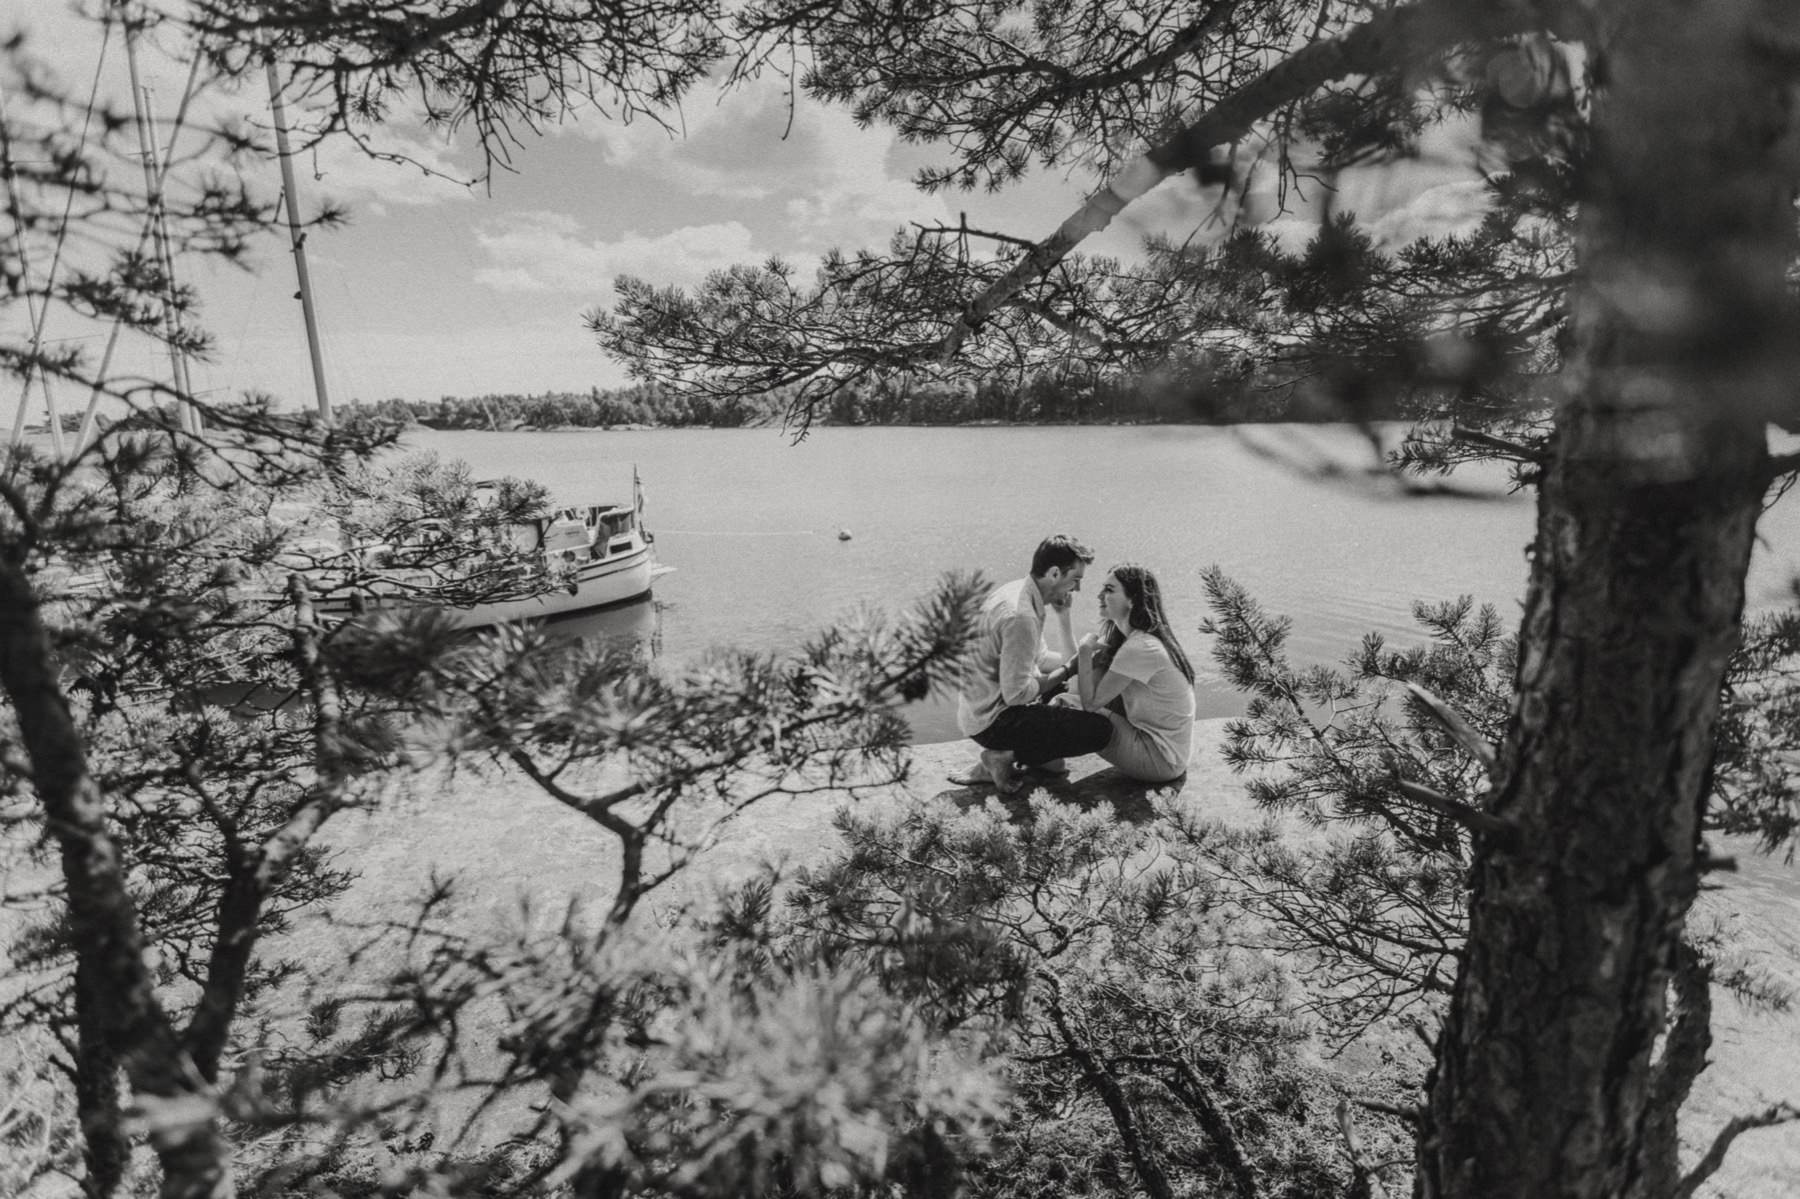 photo session in the Finnish archipelago